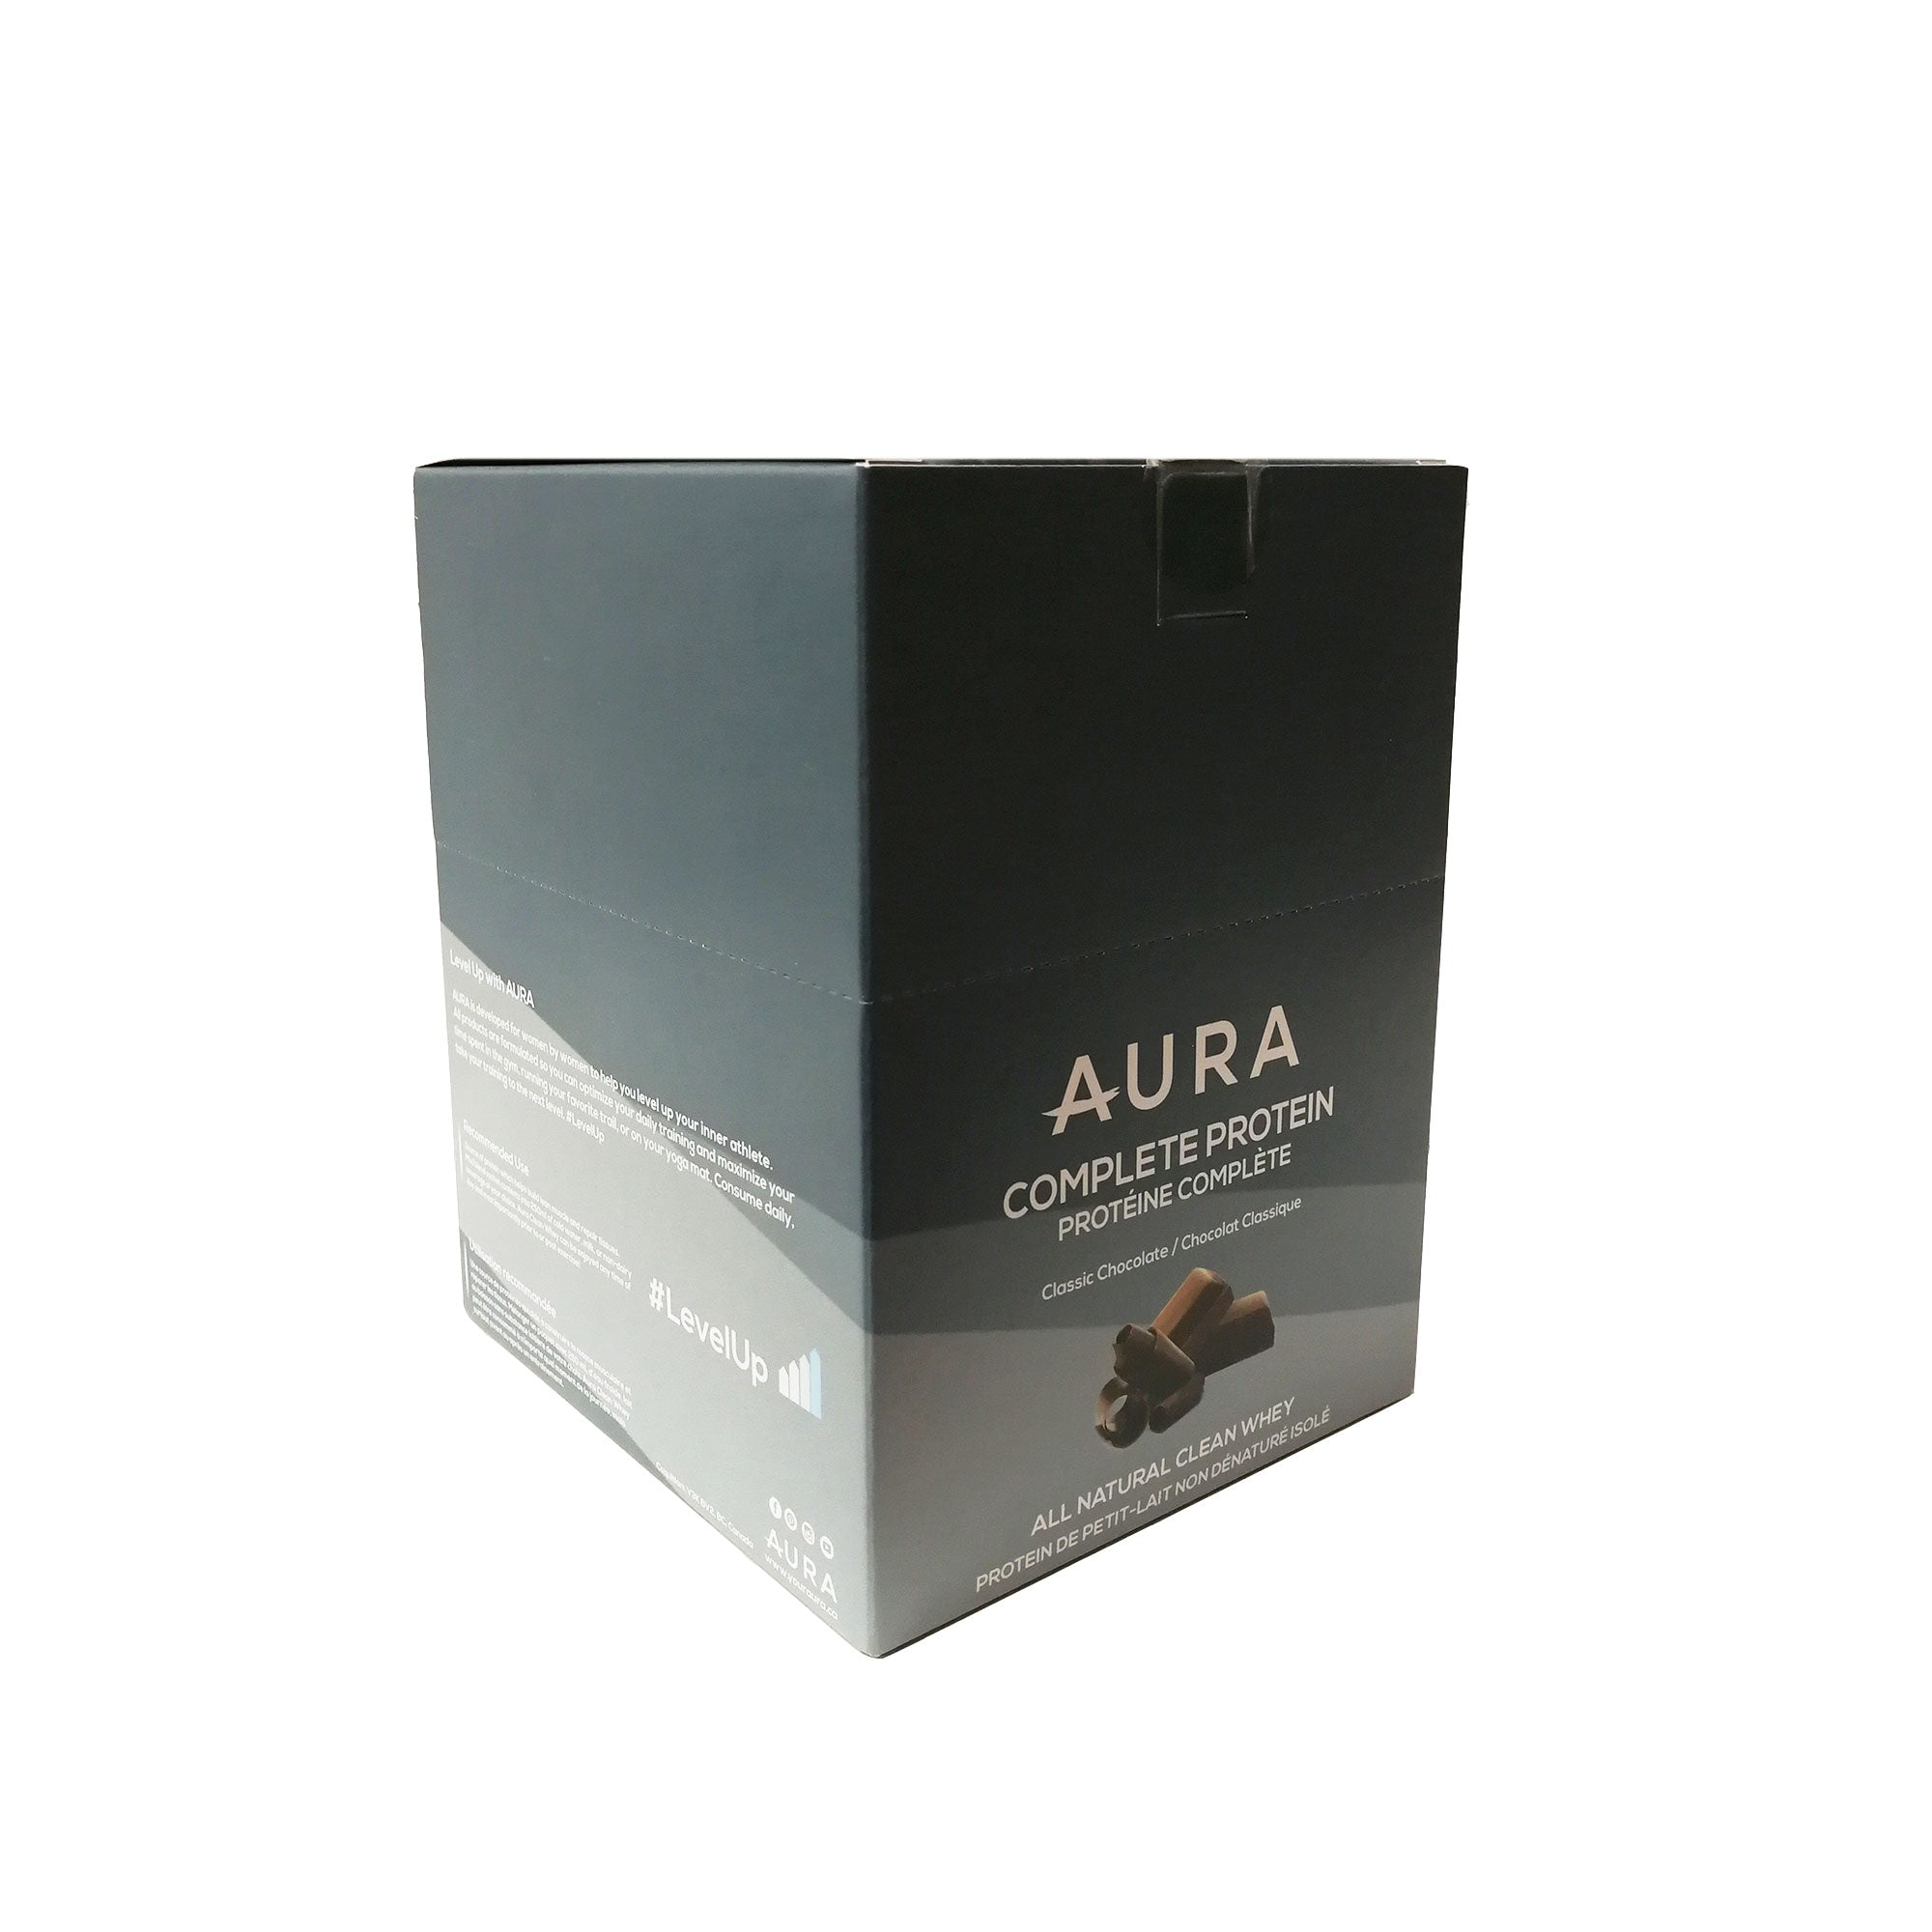 AURA™ Complete Protein - Individual Sachets - Box of 10 x 36g